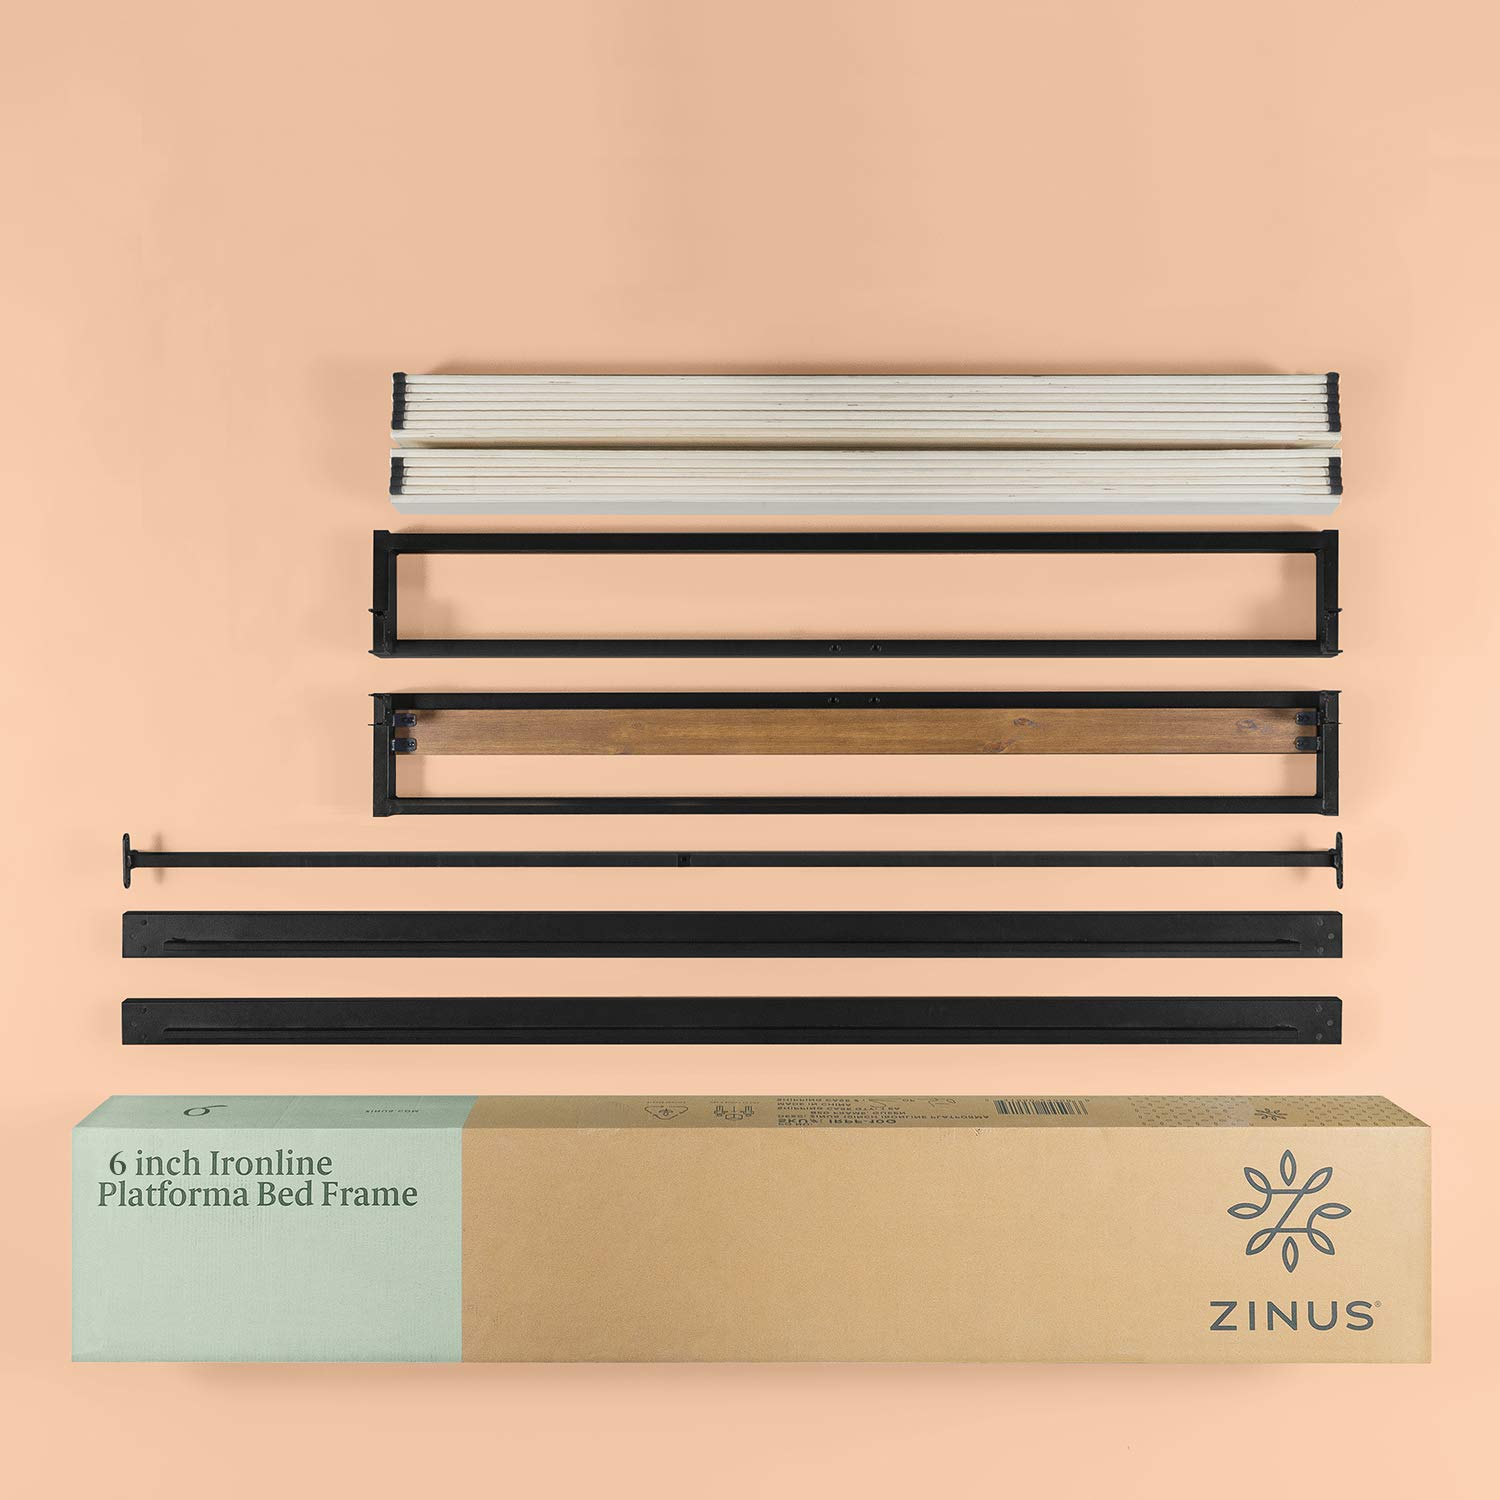 Zinus-Industrial-Metal-Wood-Bed-Frame-Single-Double-Queen-King-Low-Base-Mattress thumbnail 14